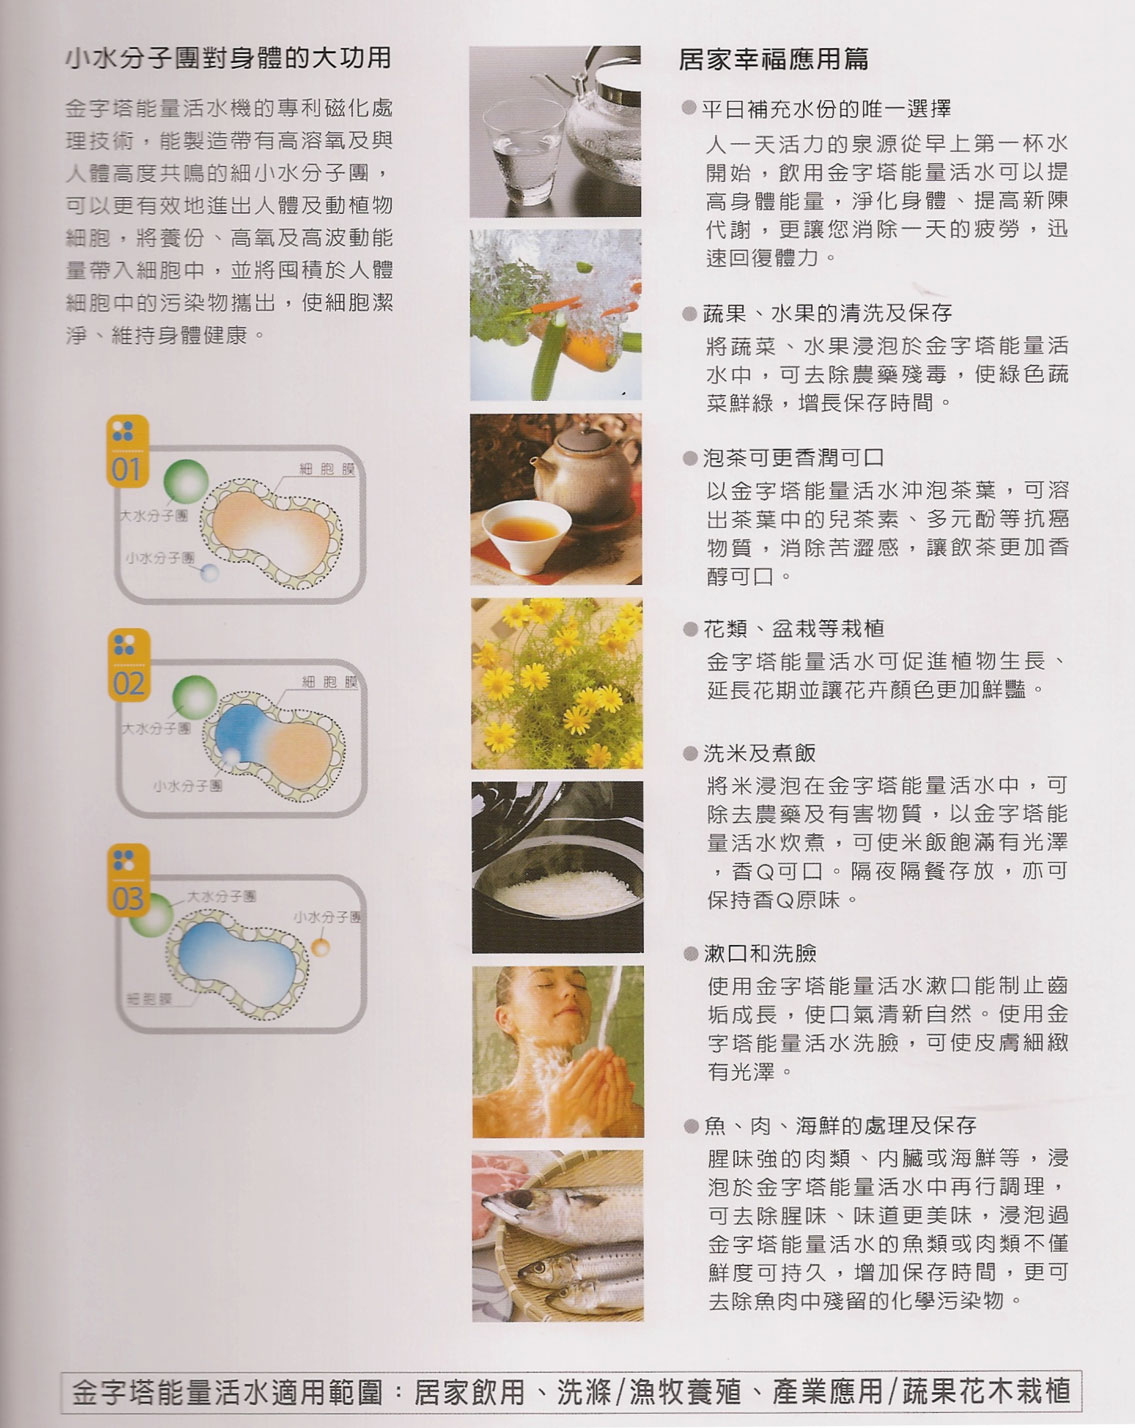 iWater_Brochure-_chinese-9